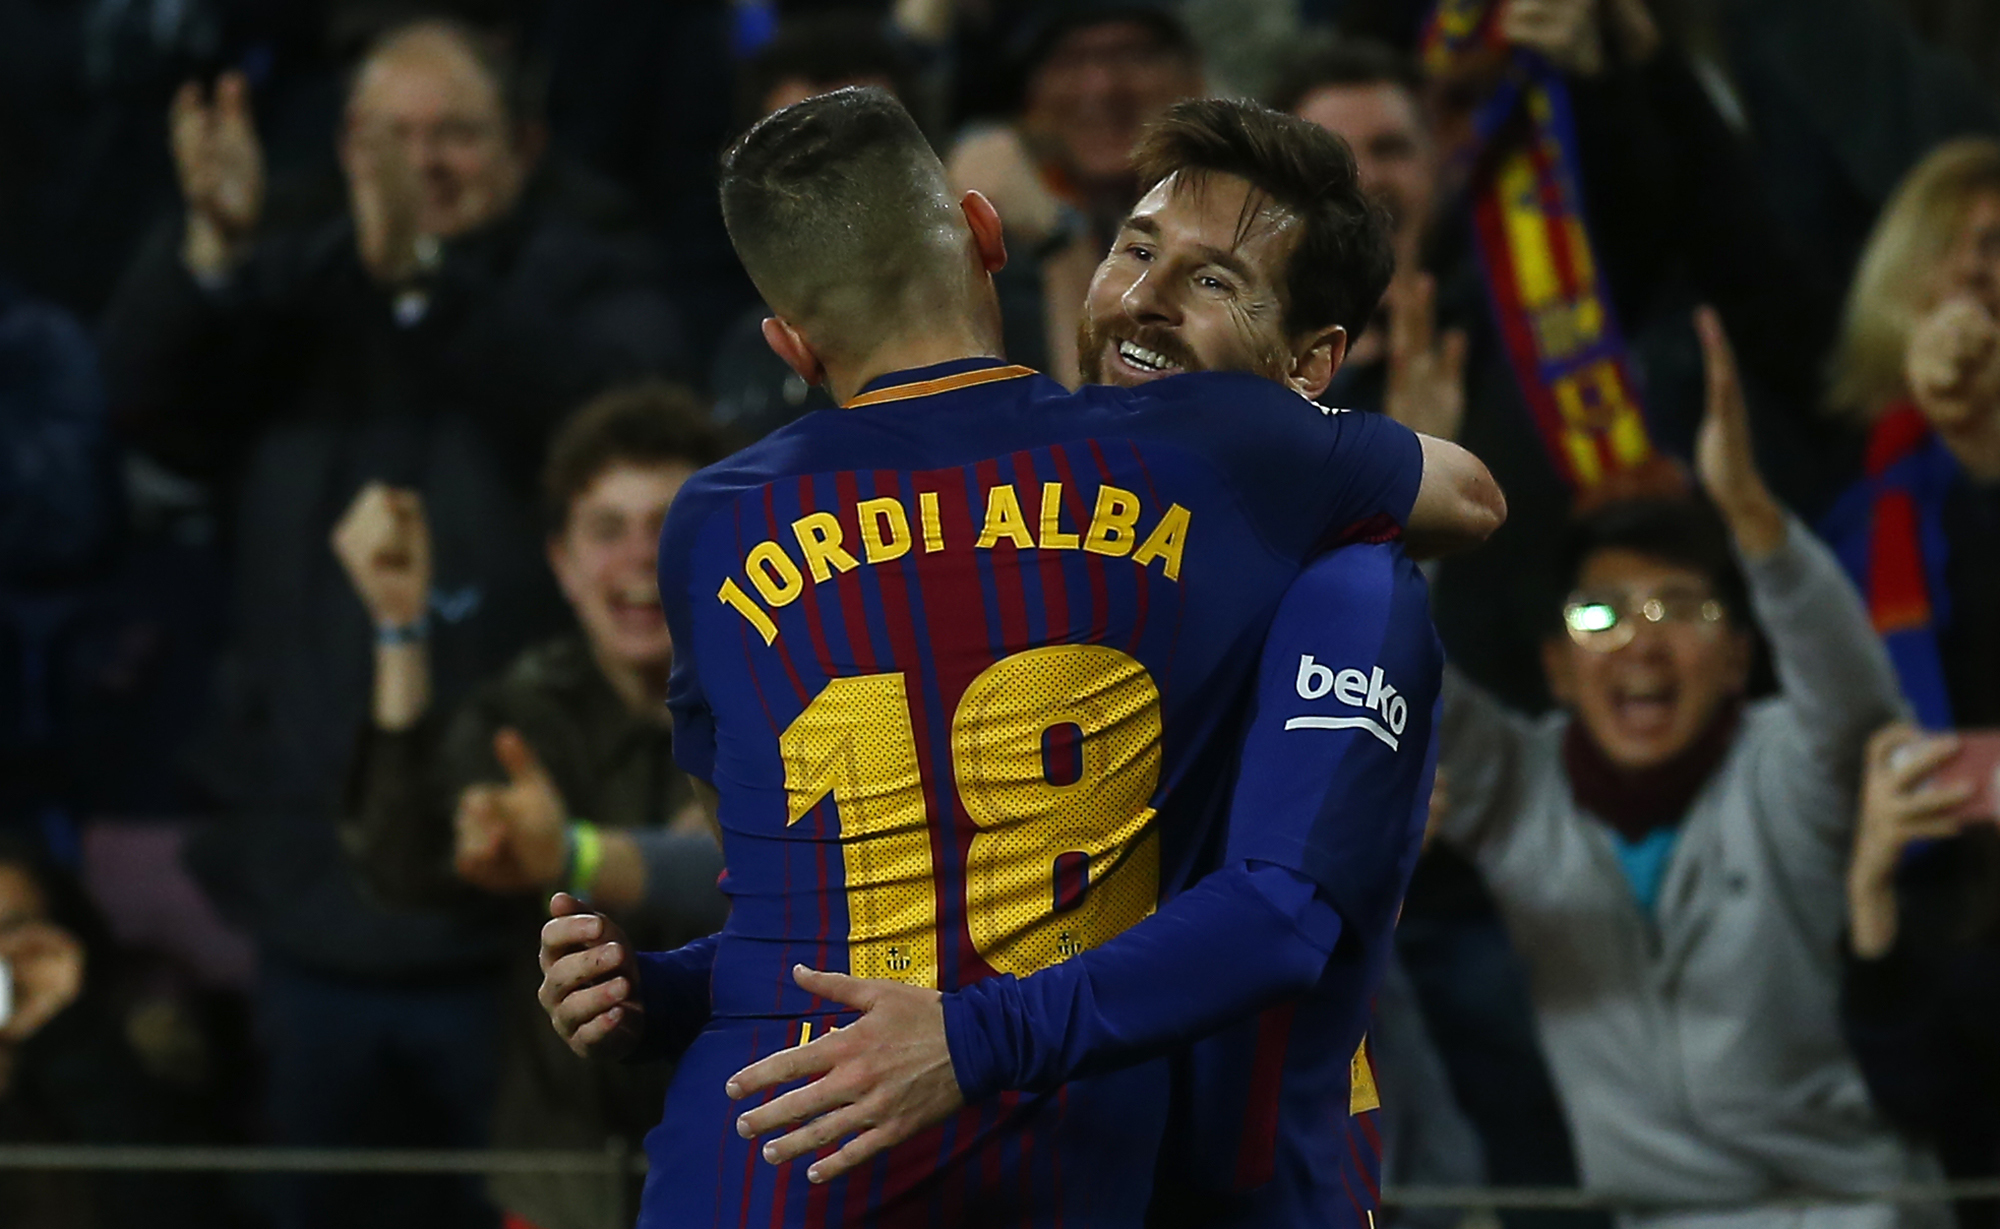 Luis Suarez, Lionel Messi save Barcelona from Alaves setback